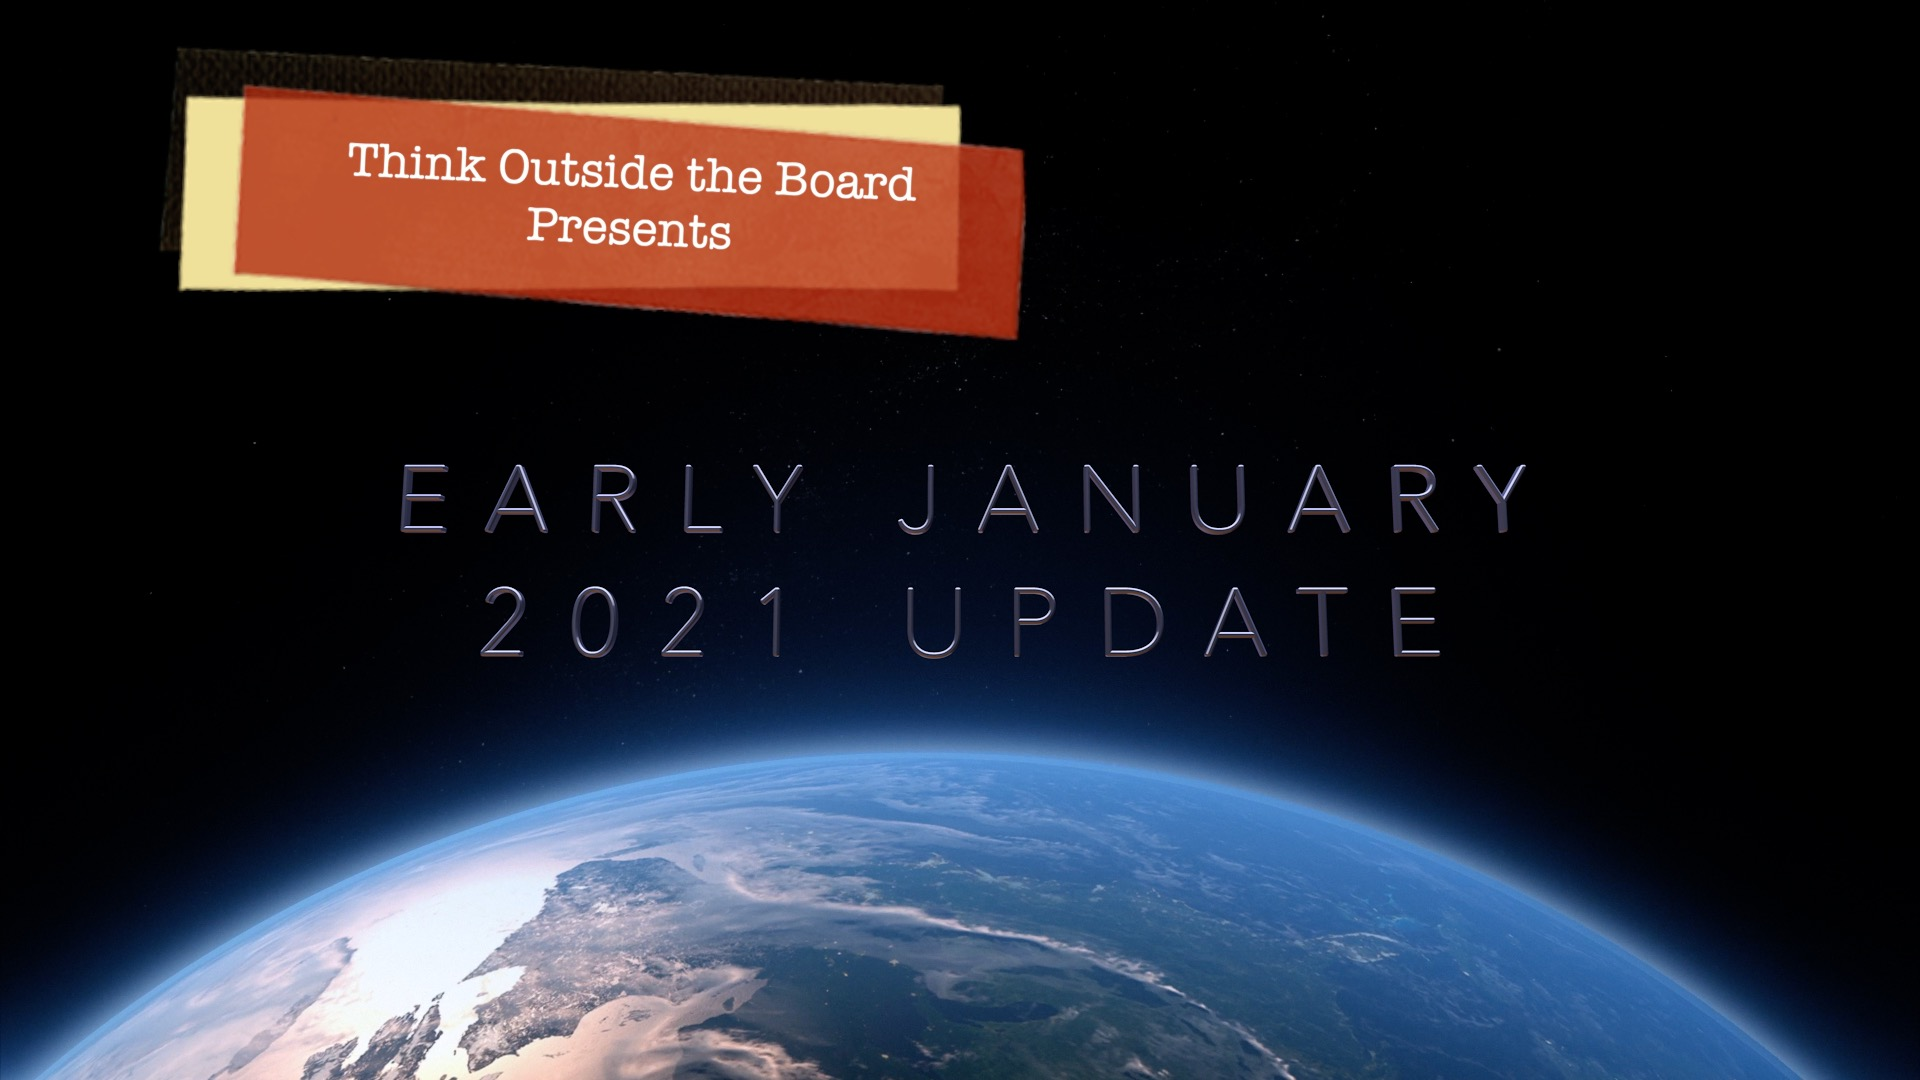 Early January 2021 Update